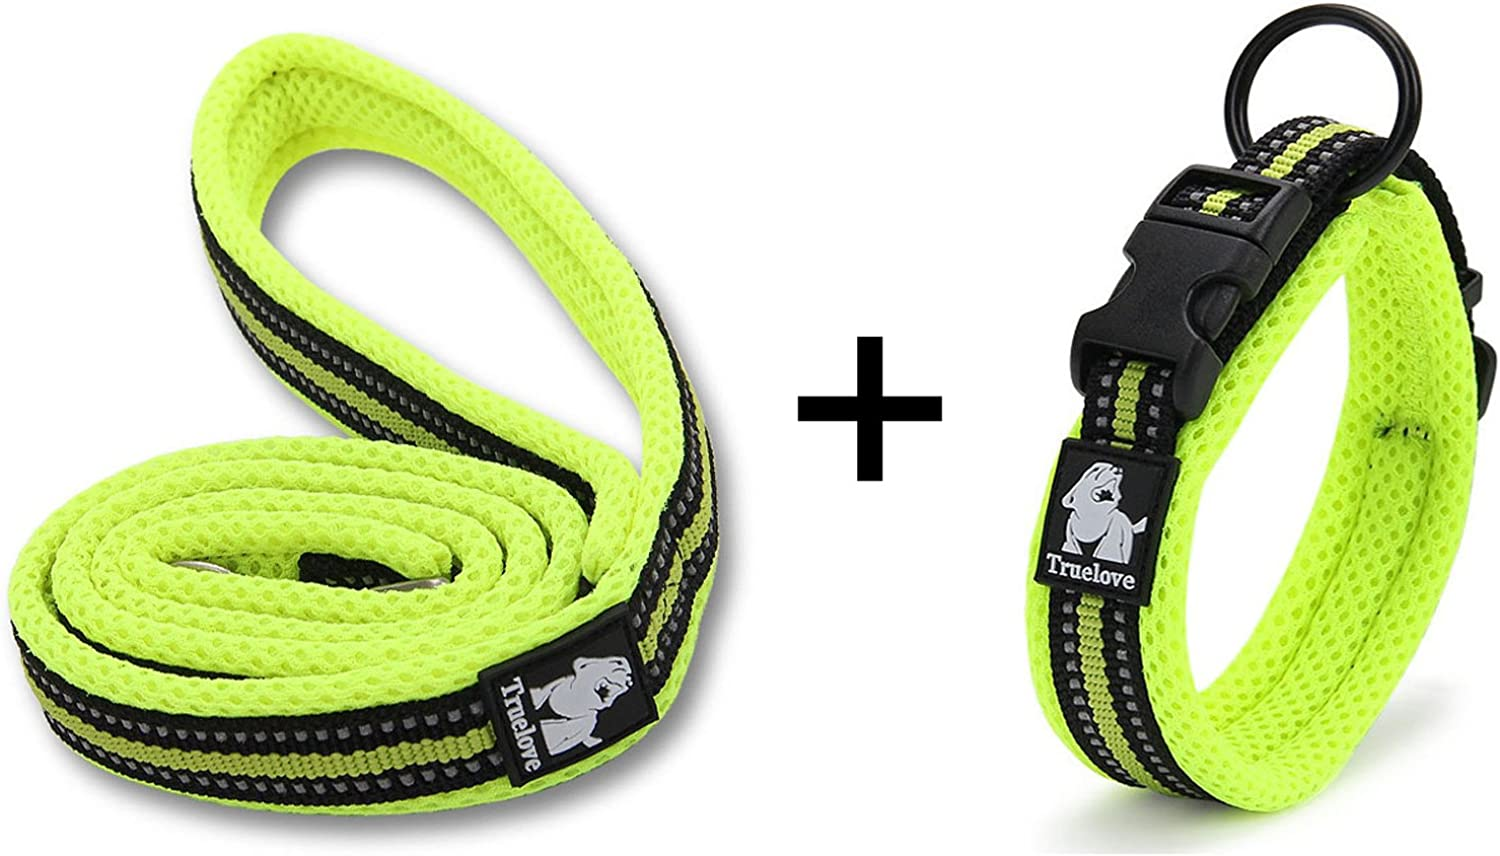 OCSOSO New Padded Soft Breathable Mesh 3M Reflective Pet Collar & Leash for Dog Cat Trainning Pet Safety Collars, Easy Buckle Design, Green (Leash is 110cm Lenght) ( 1)